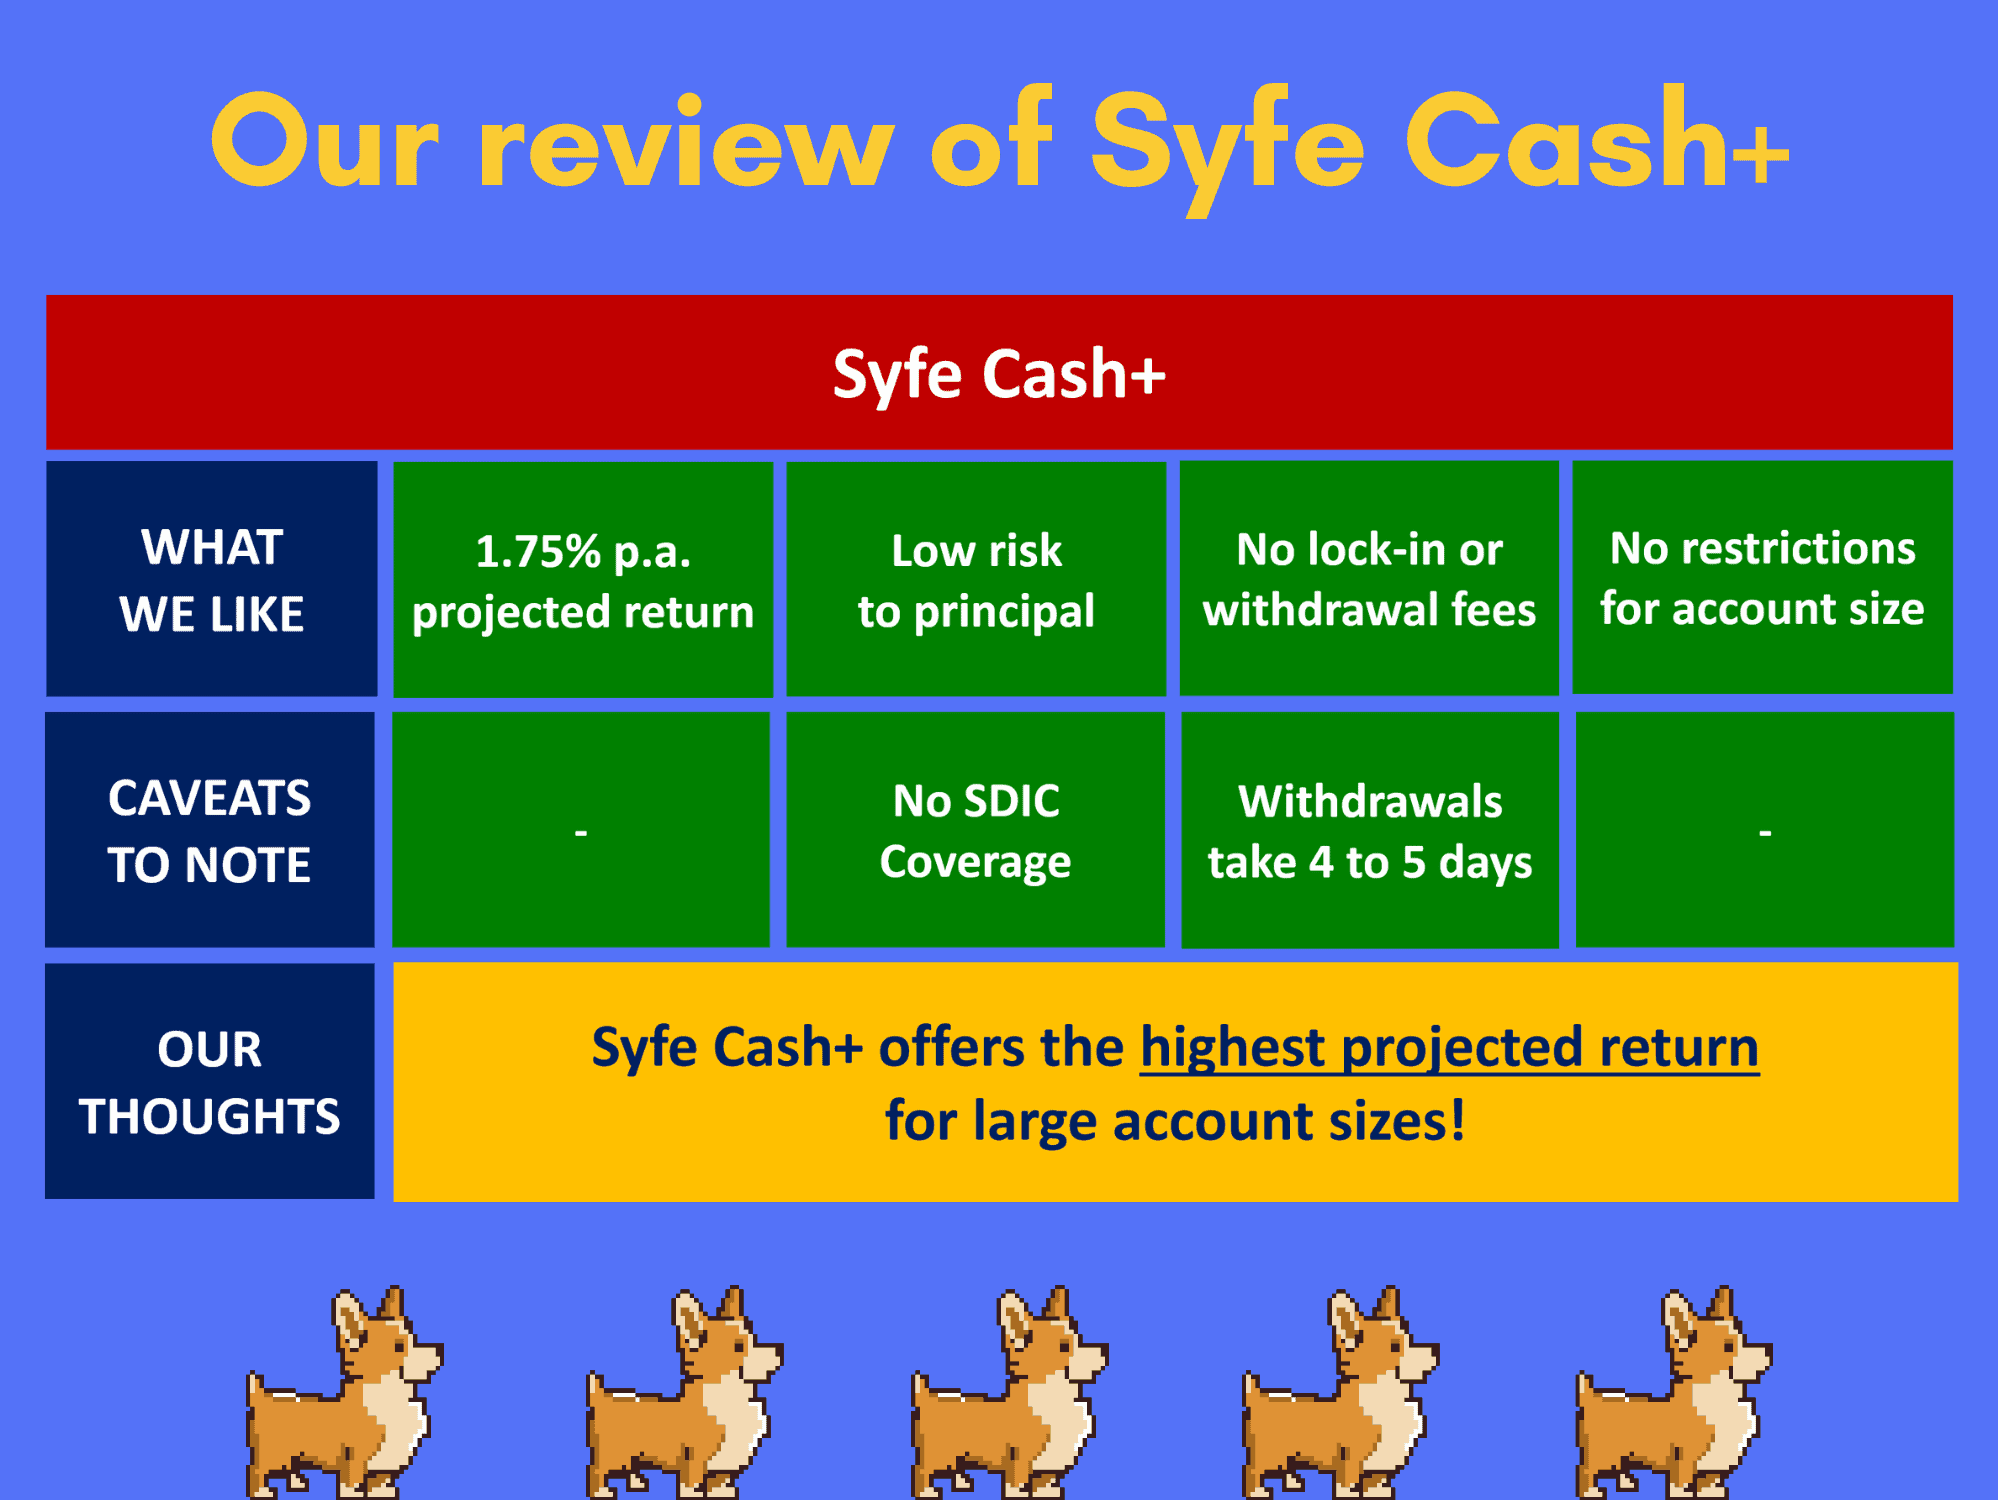 Syfe Cash+: Cash Management Account with 1.75% p.a. Projected Return!